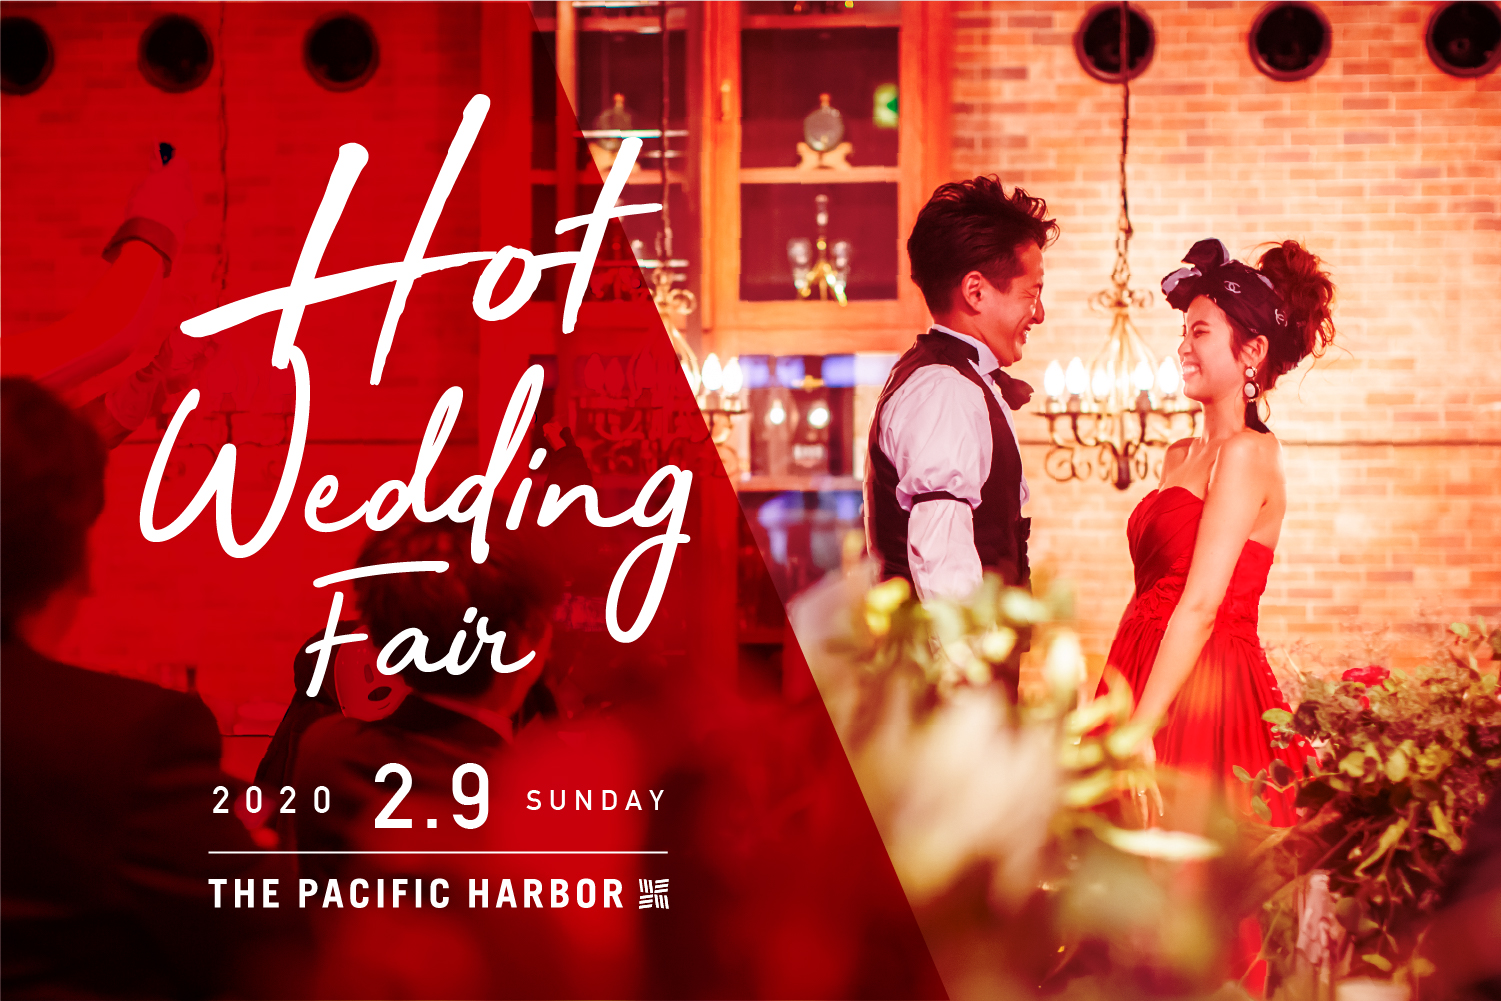 HOT WEDDING FAIR